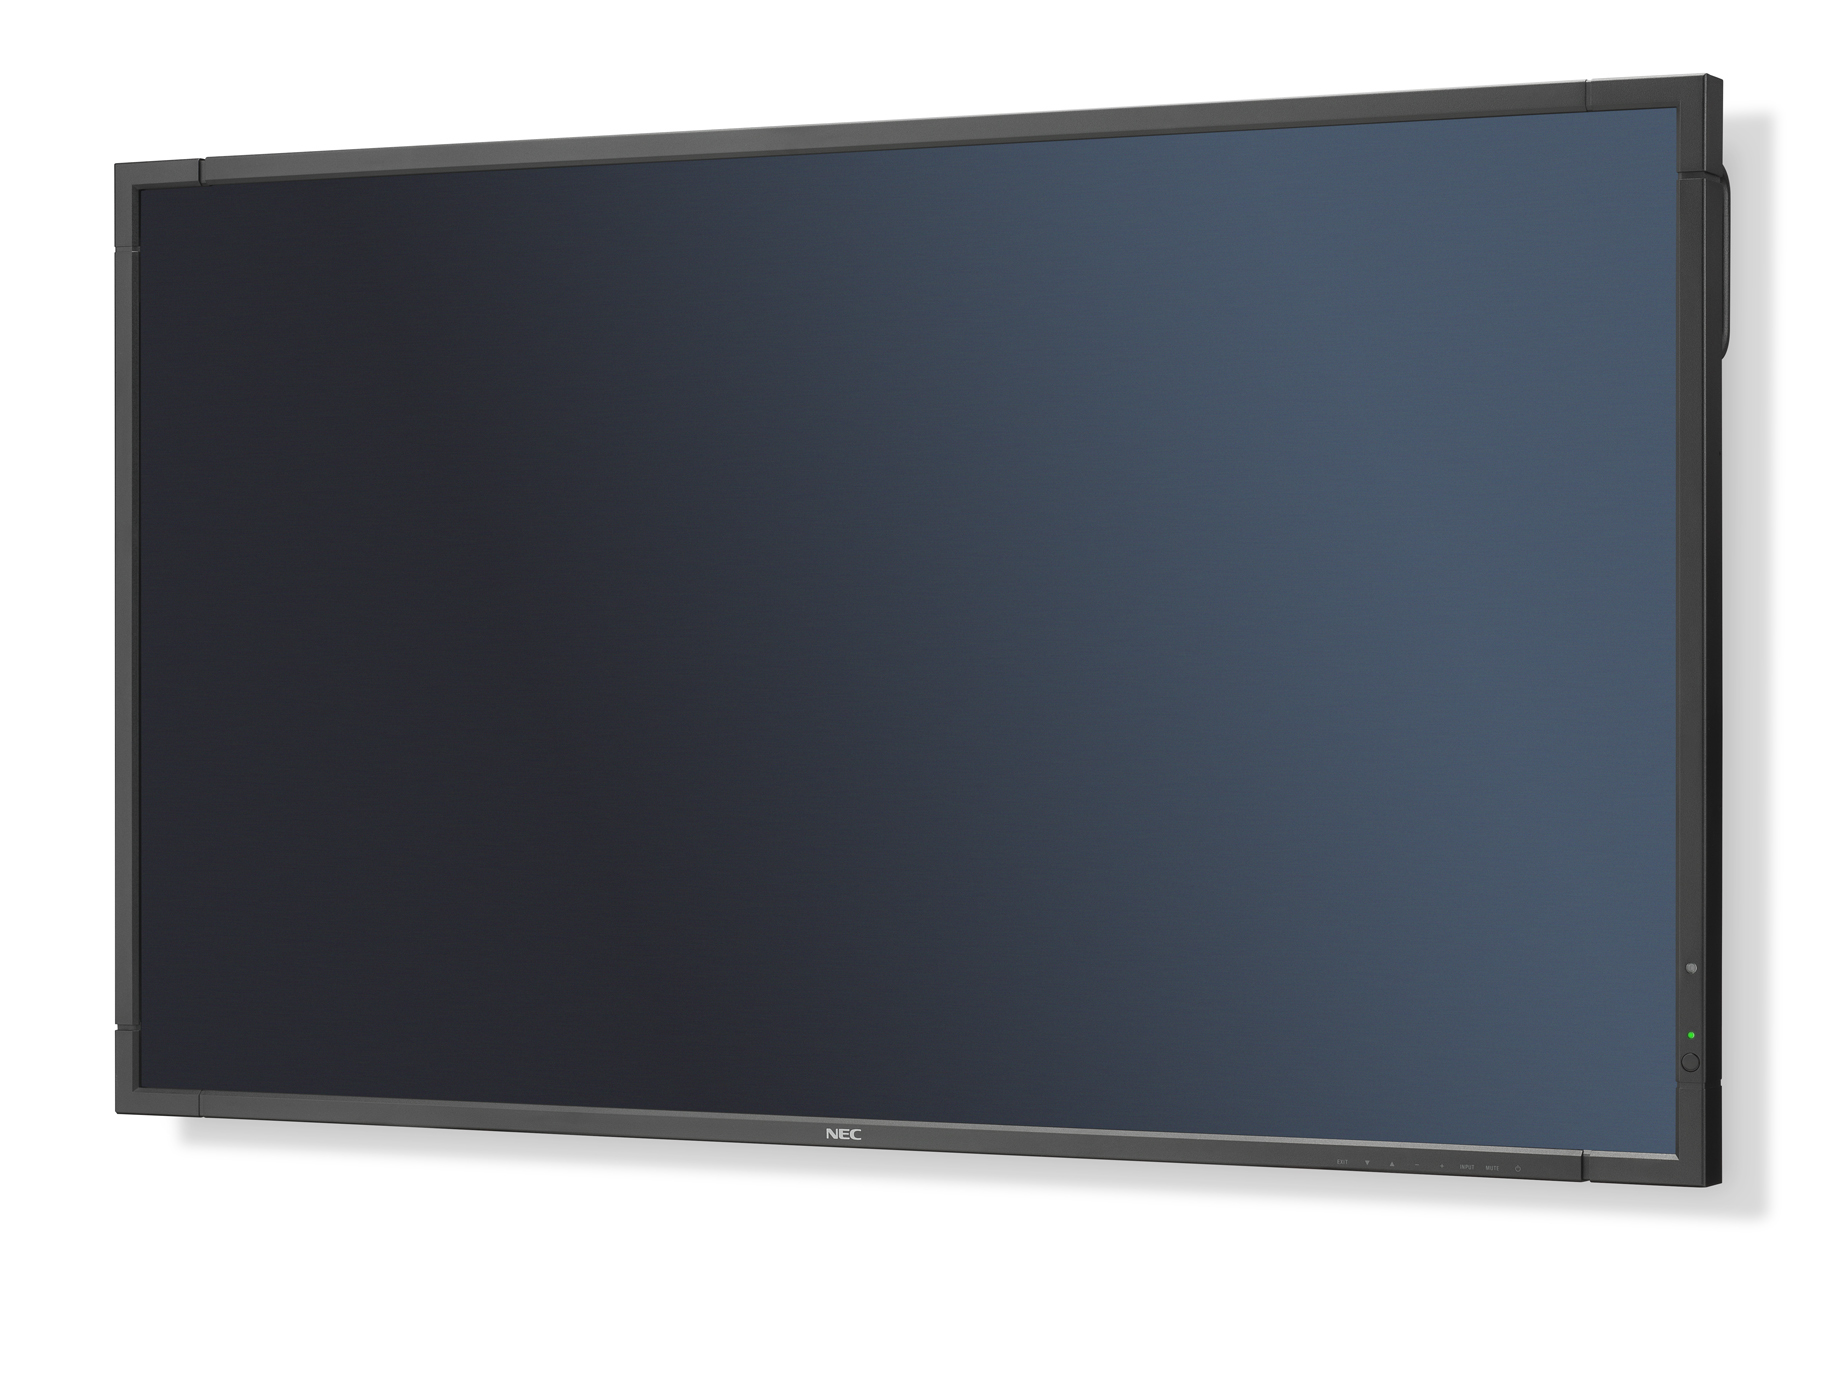 NEC 60003929 MULTISYNC E805 DIGITAL SIGNAGE FLAT PANEL 80